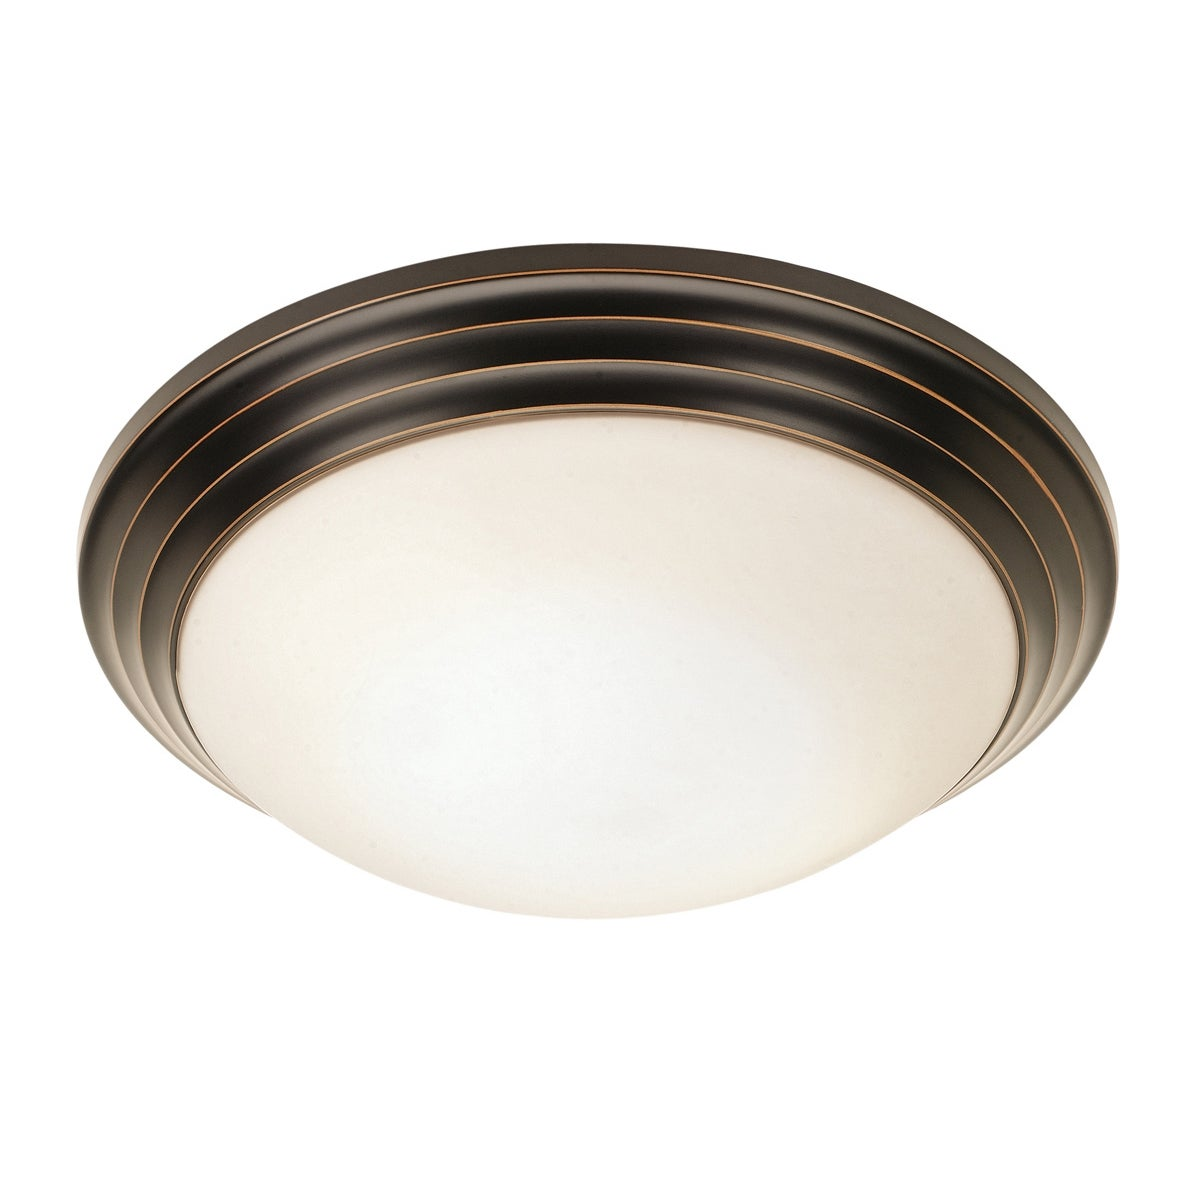 Access Strata 1-light Oil-rubbed Bronze Flush-Mount (Oil-...